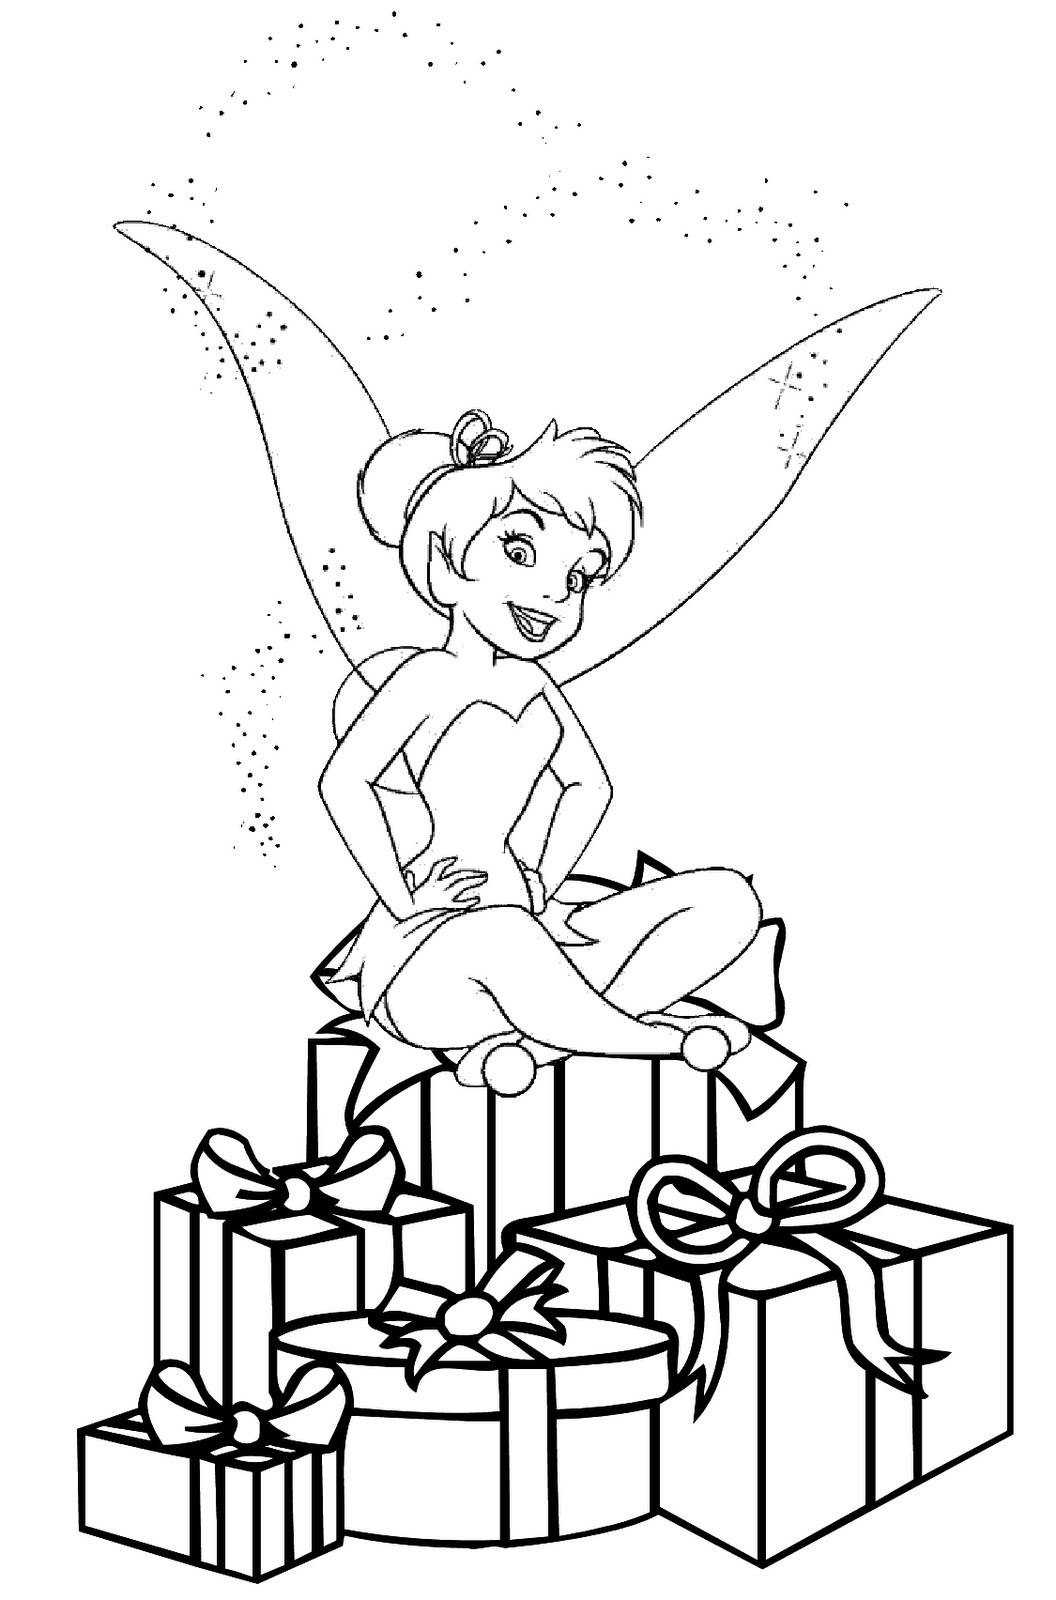 Christmas colouring in sheets printable - Christmas Tinkerbell Coloring Pages